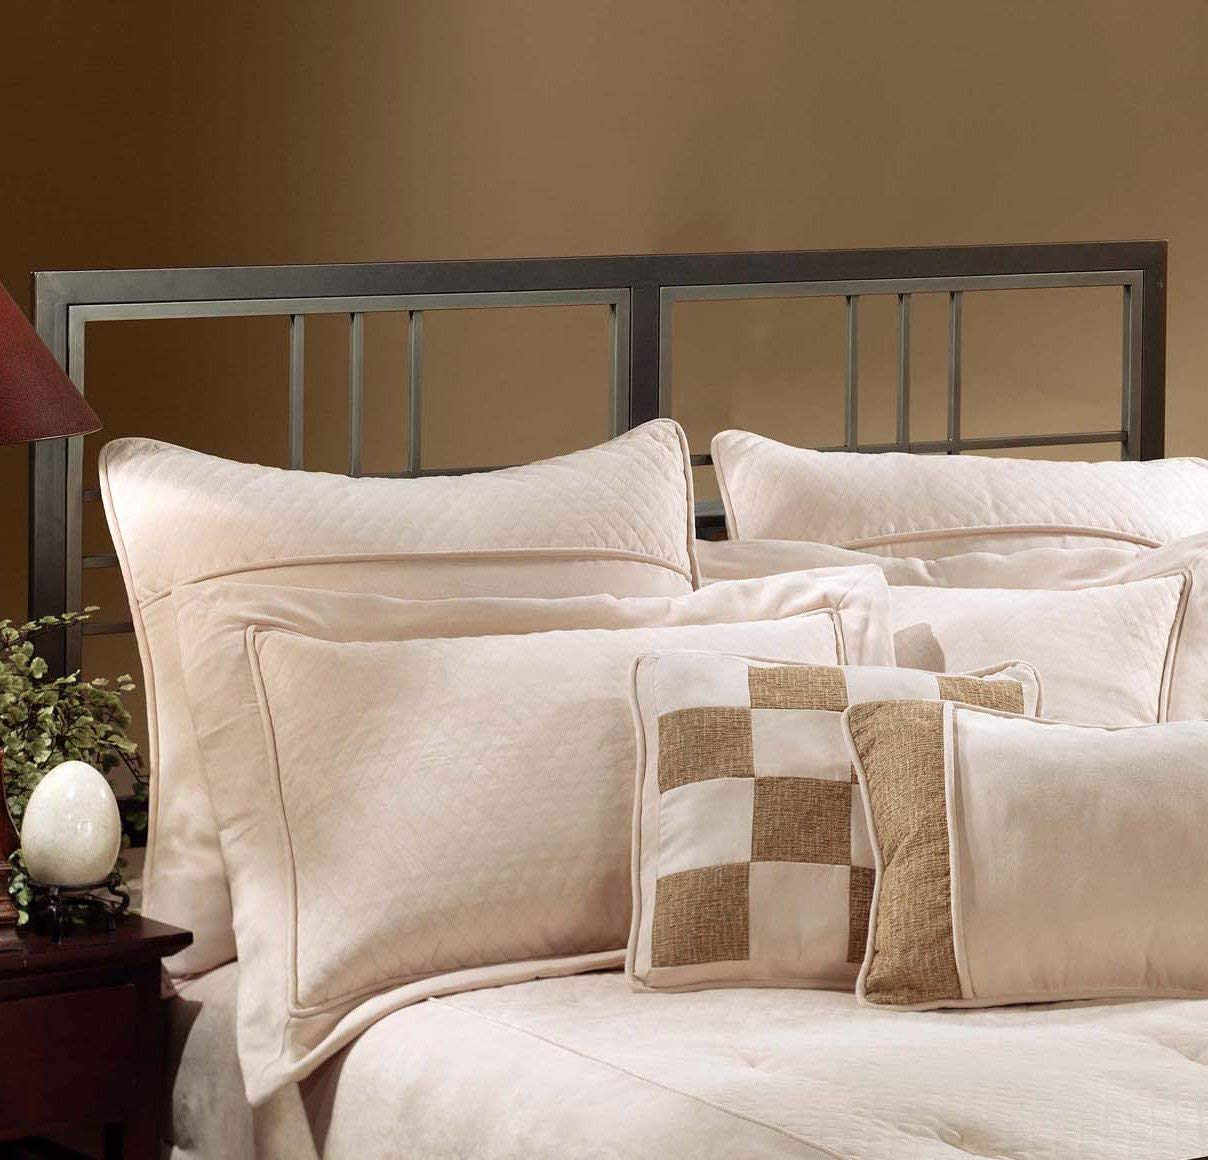 Hillsdale Furniture Tiburon Bed Set with Rails, Full, Magnesium Pewter by Hillsdale Furniture